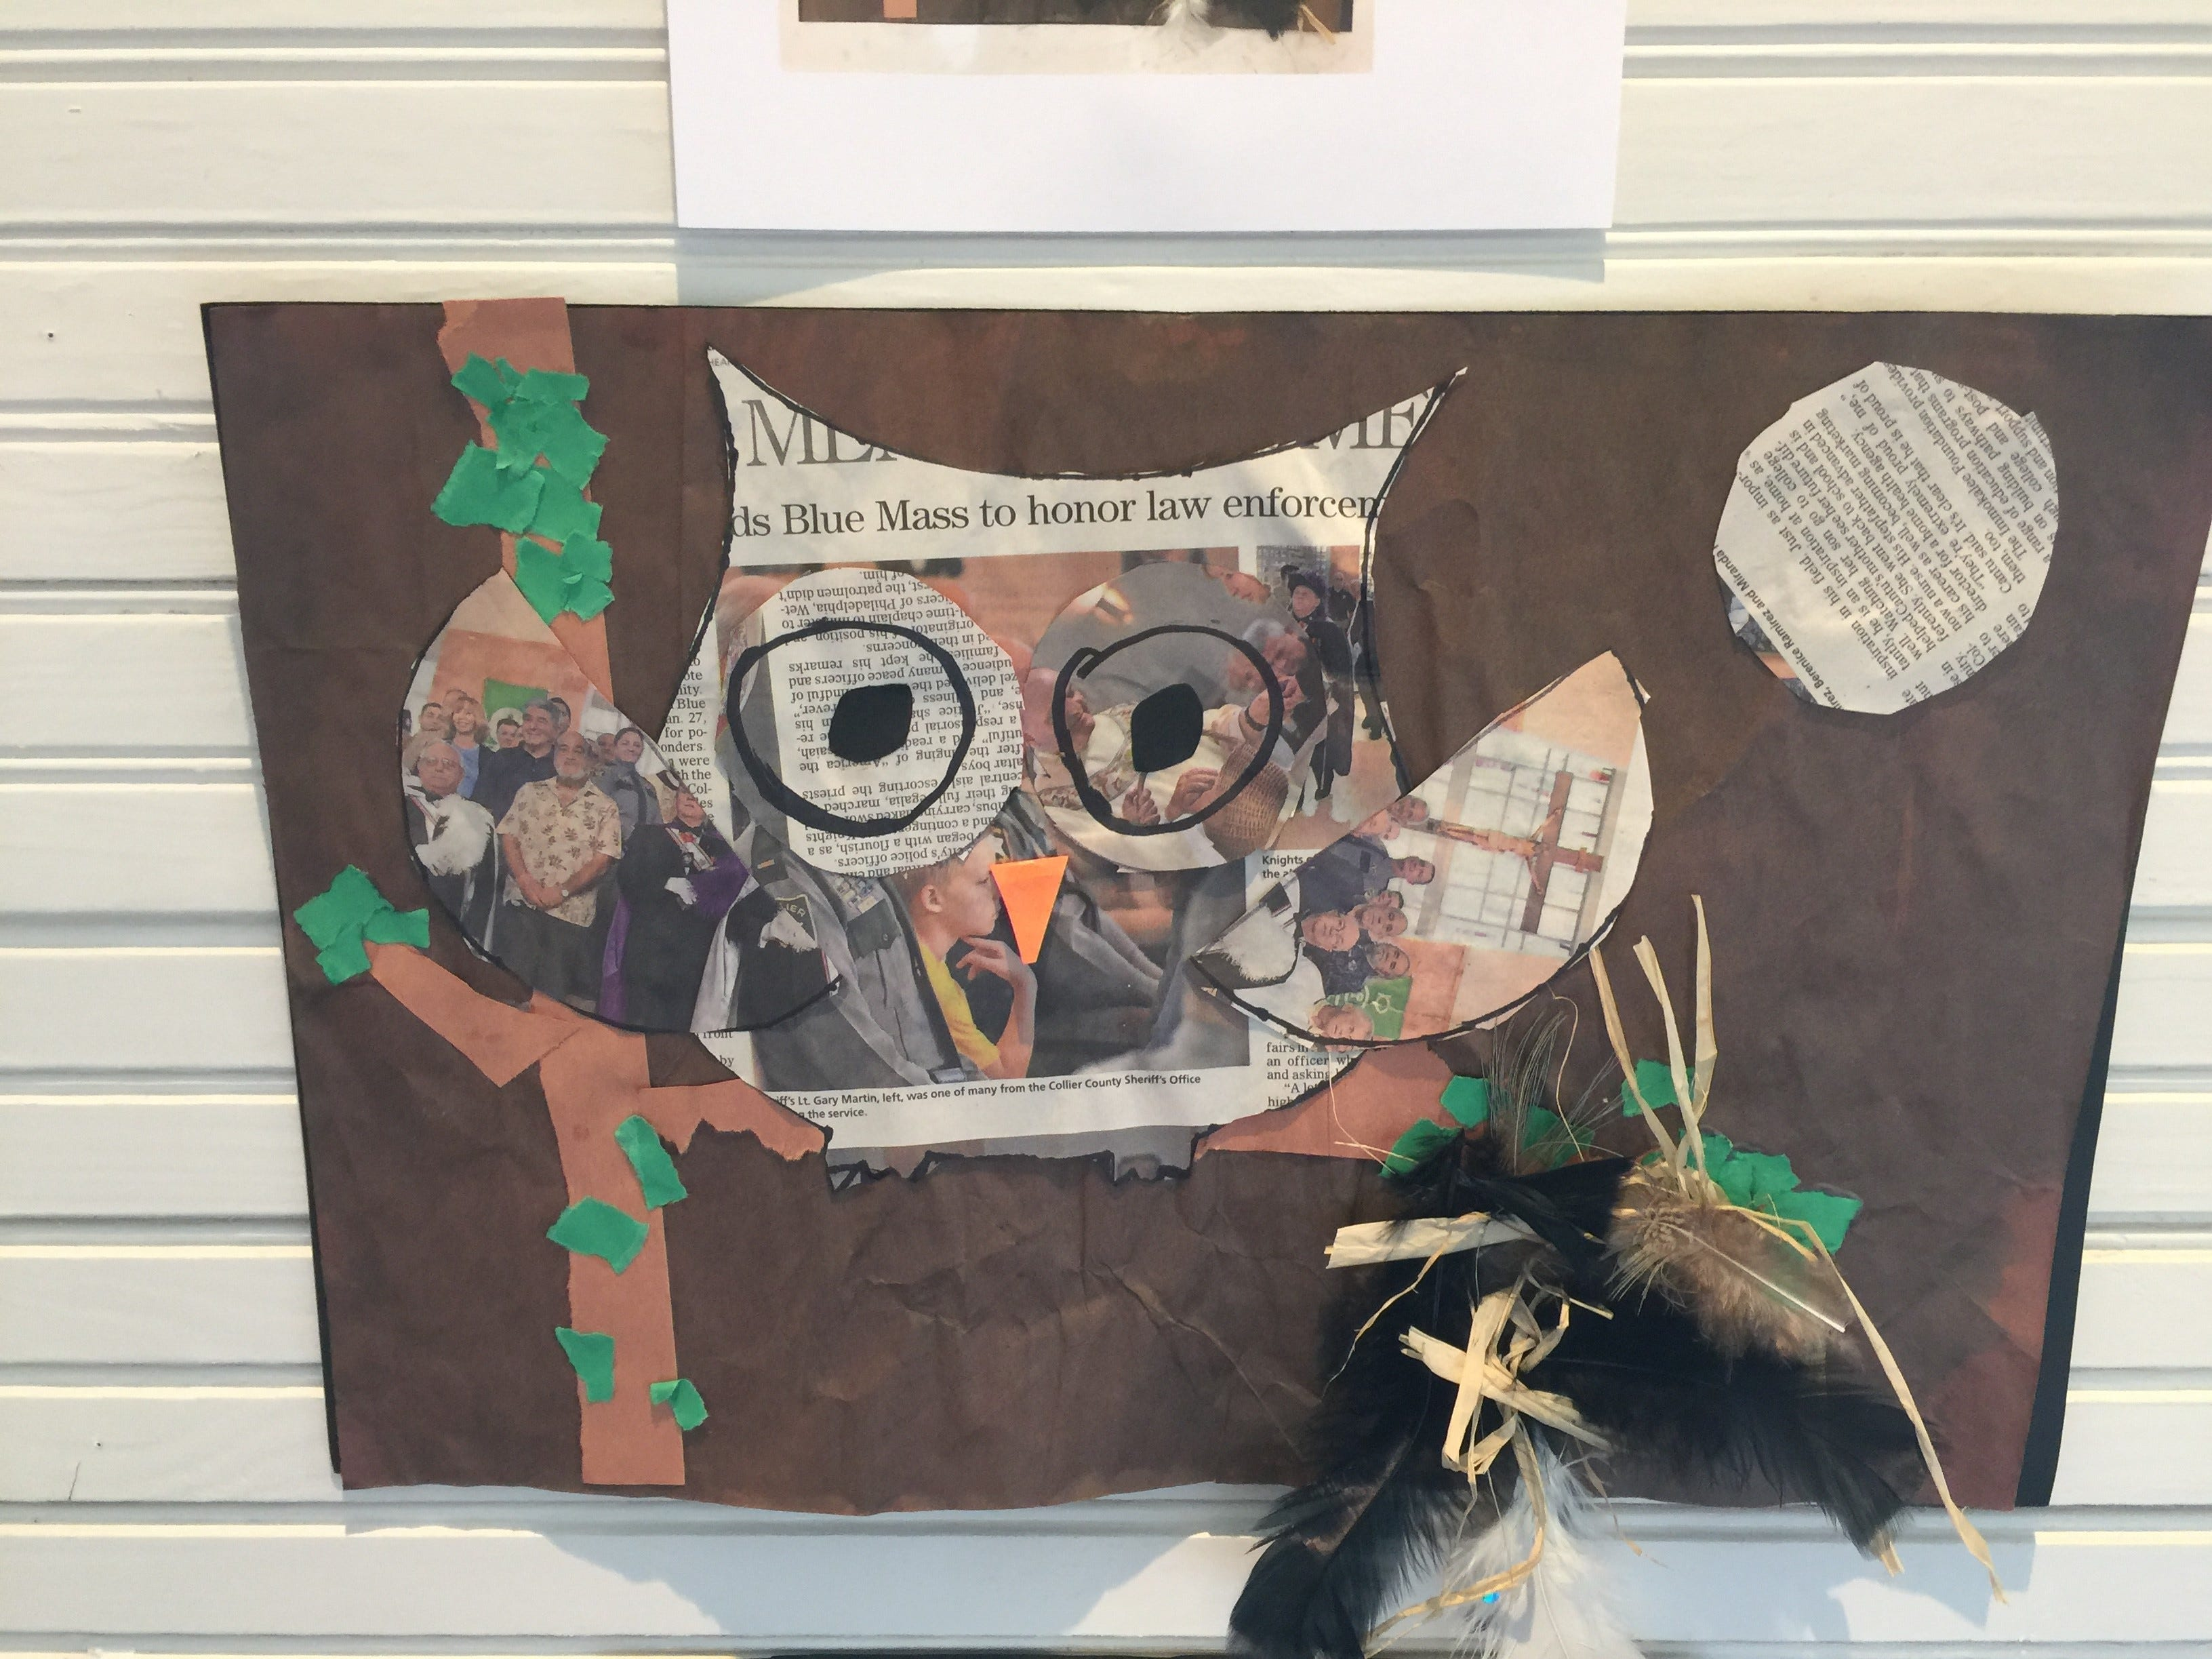 Art created from recycled objects like this were honored with awards at Immokalee Earth Day festivities, held April 13 at Roberts Ranch.